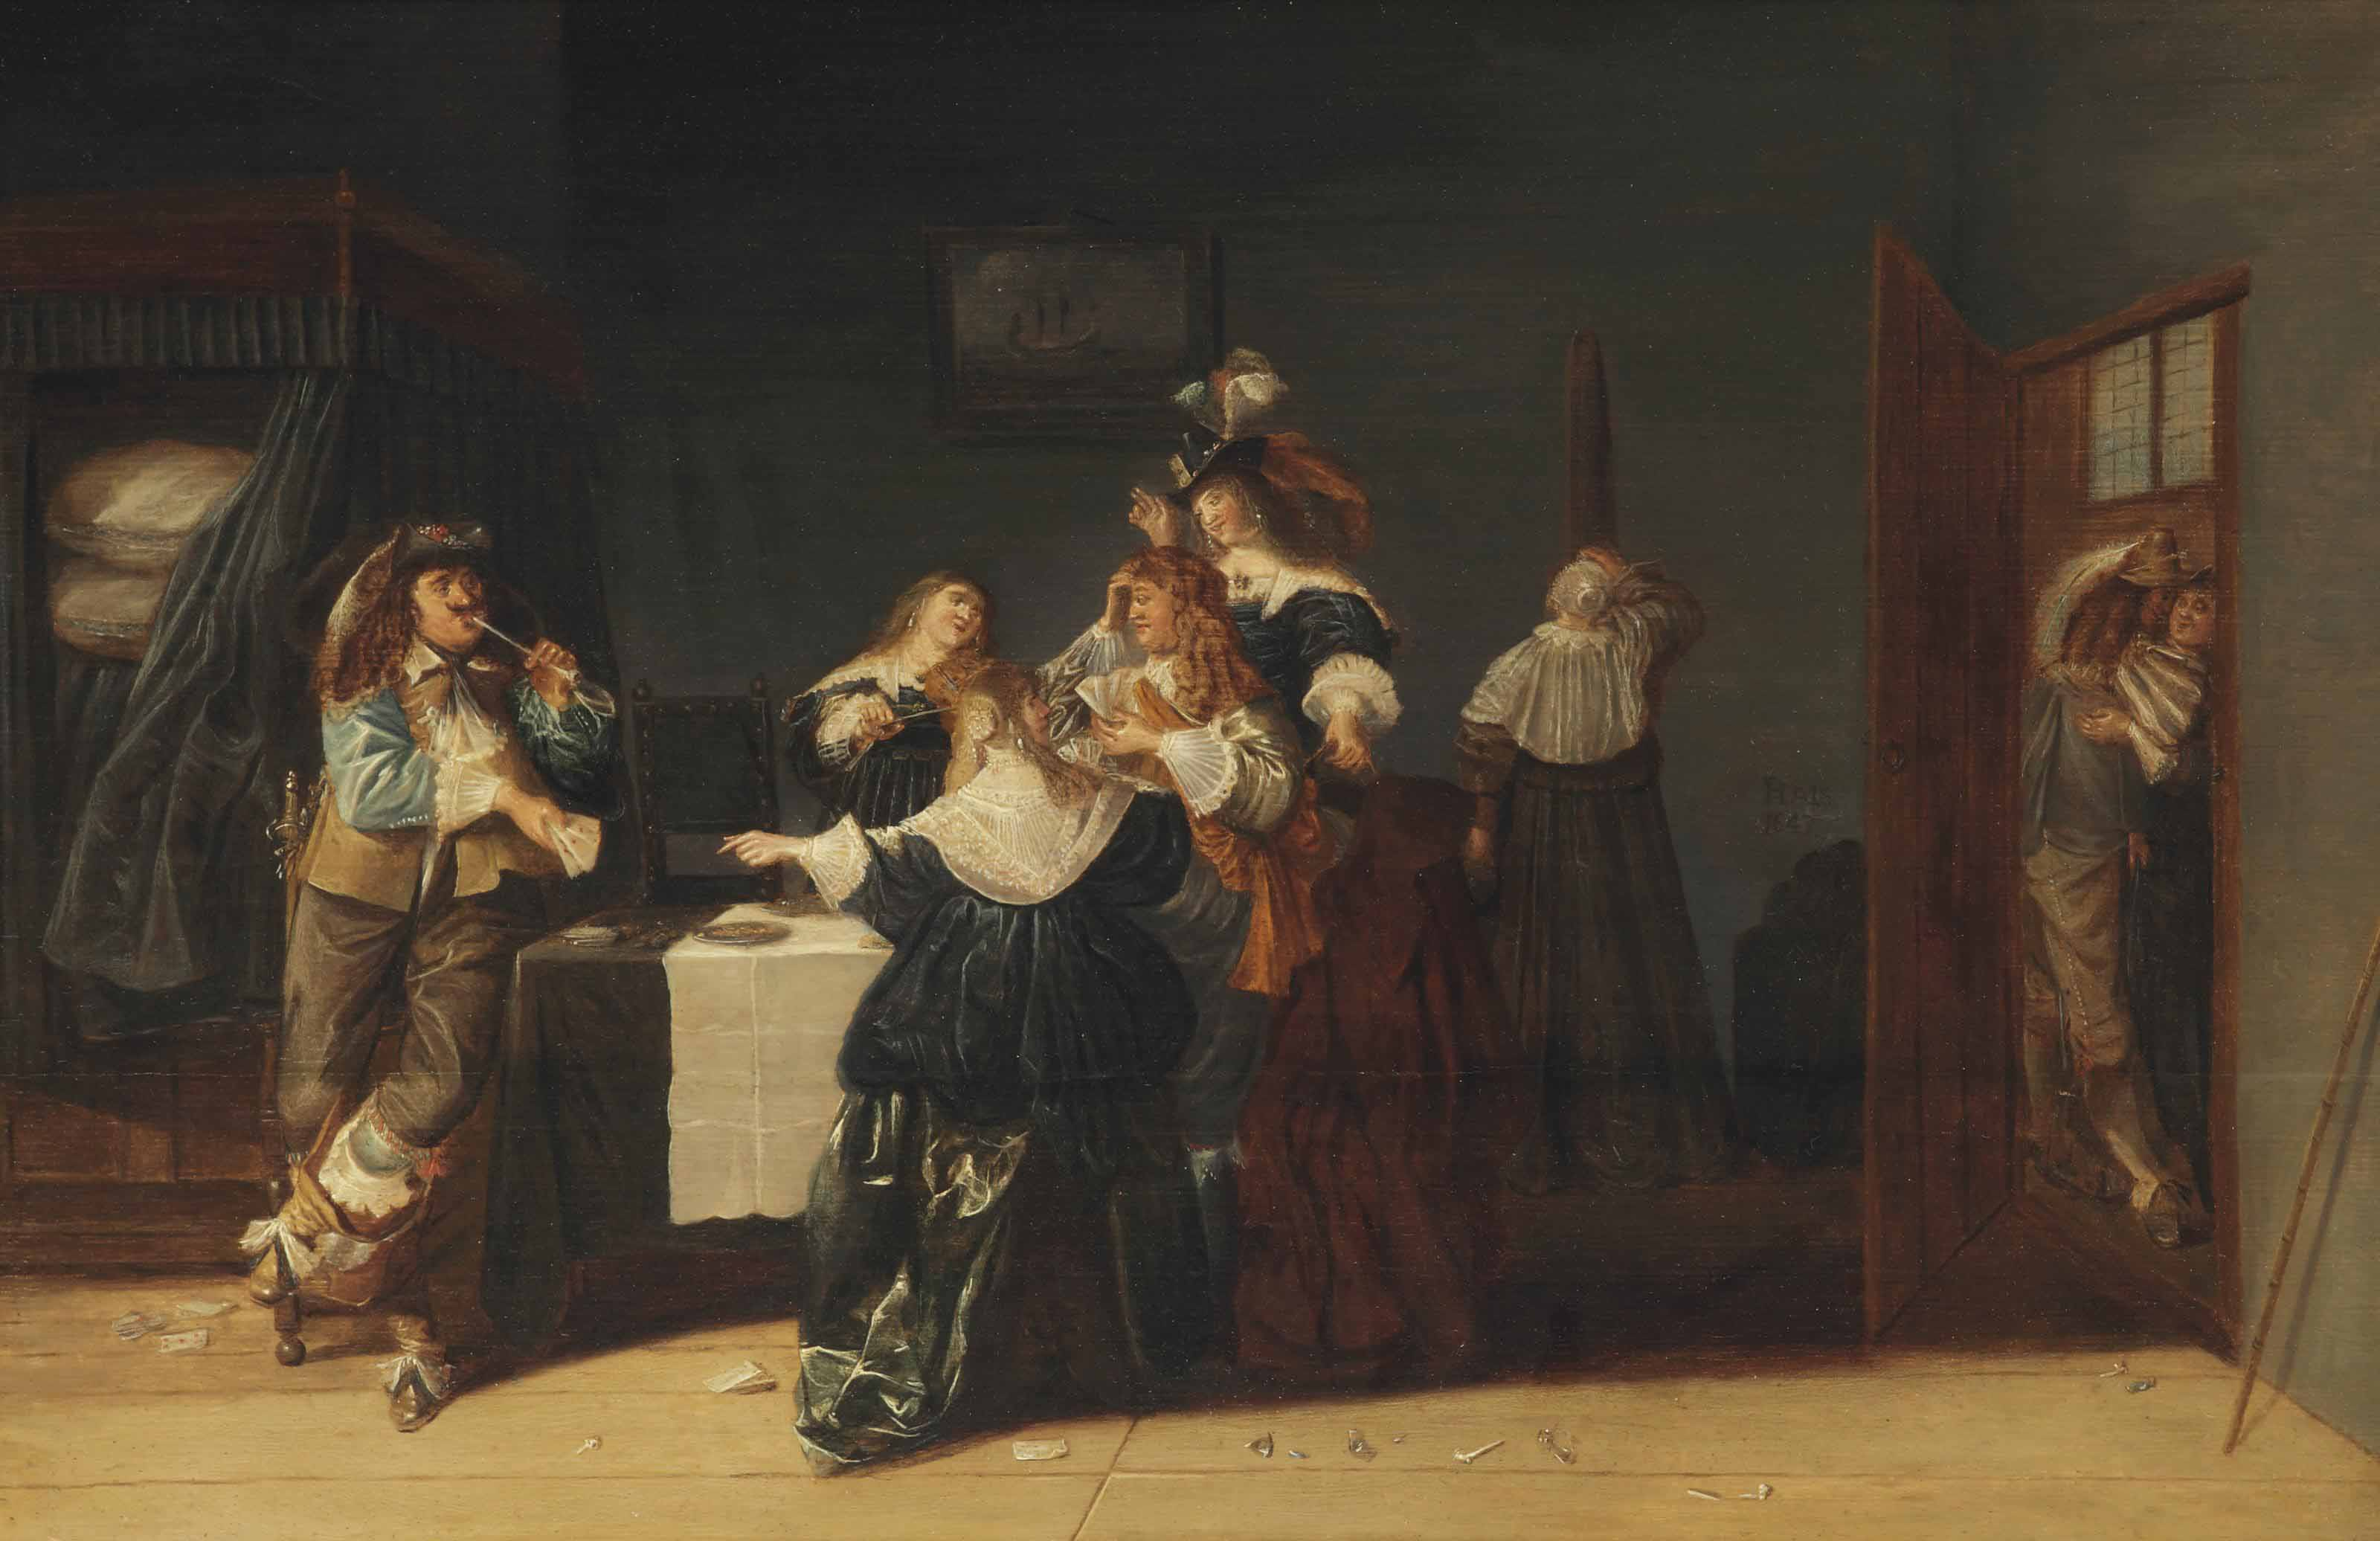 A musical party in an interior